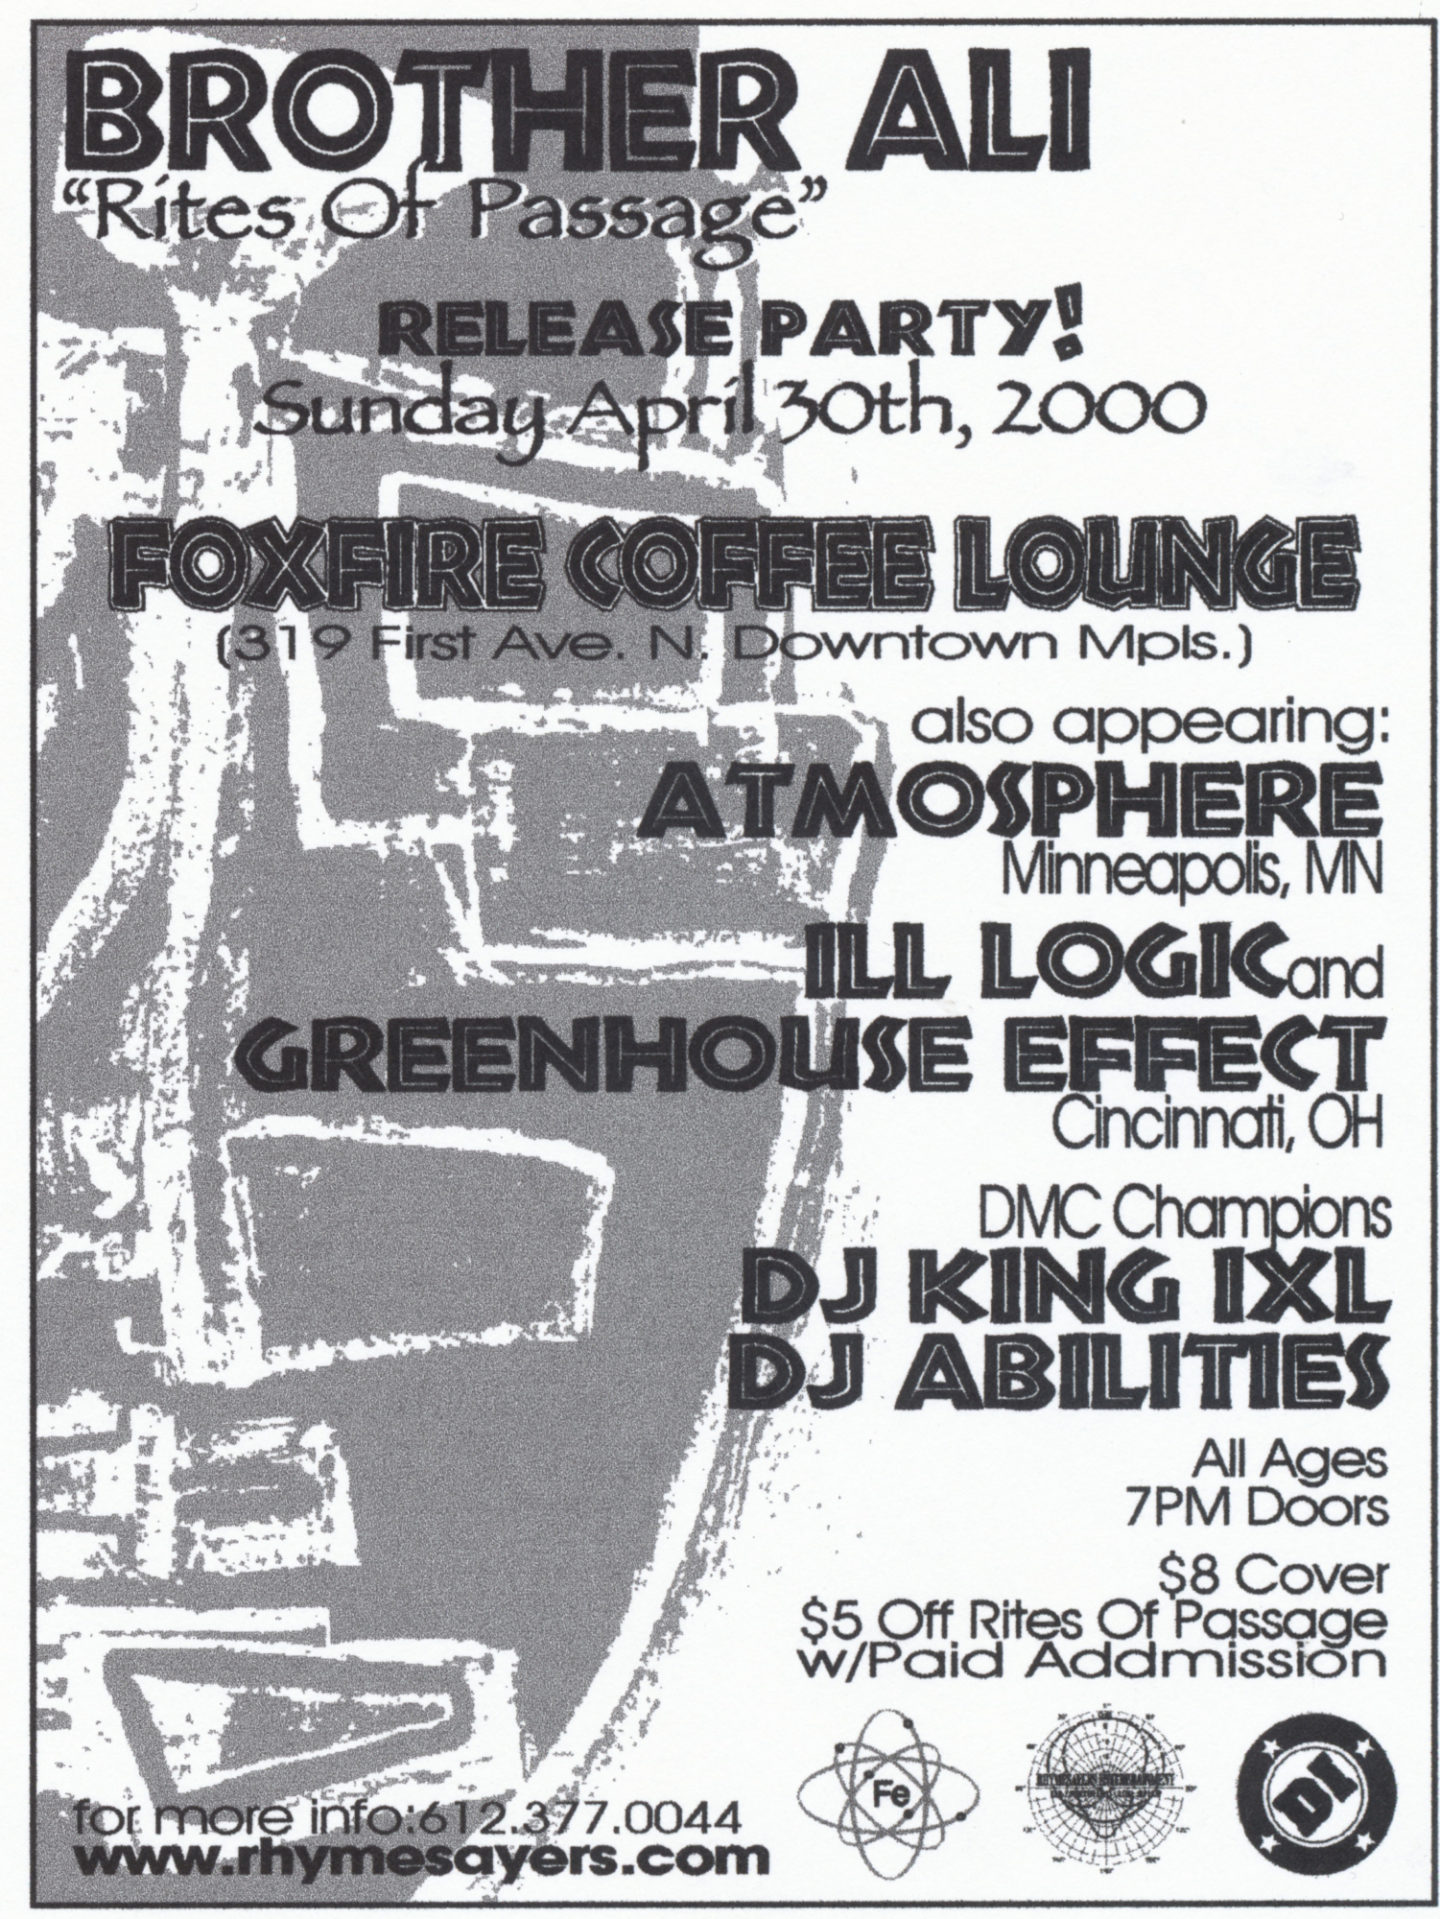 Brother Ali Release Party April 30Th 2000